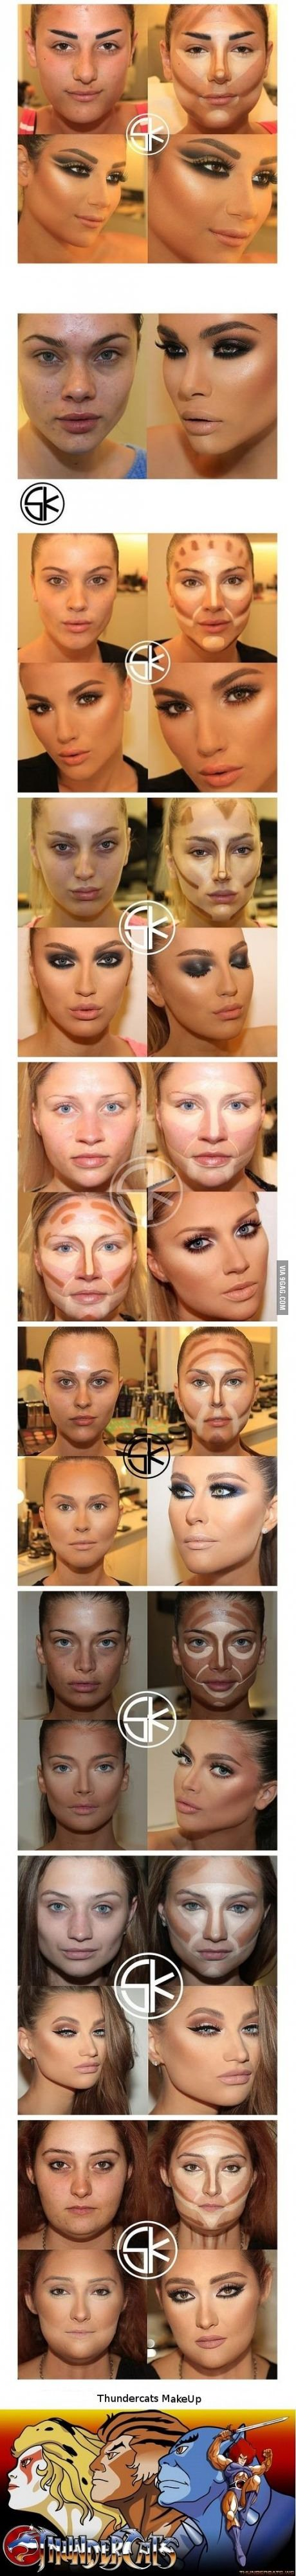 The power of Contour and highlight makeup, don't forget to take them to the pool.